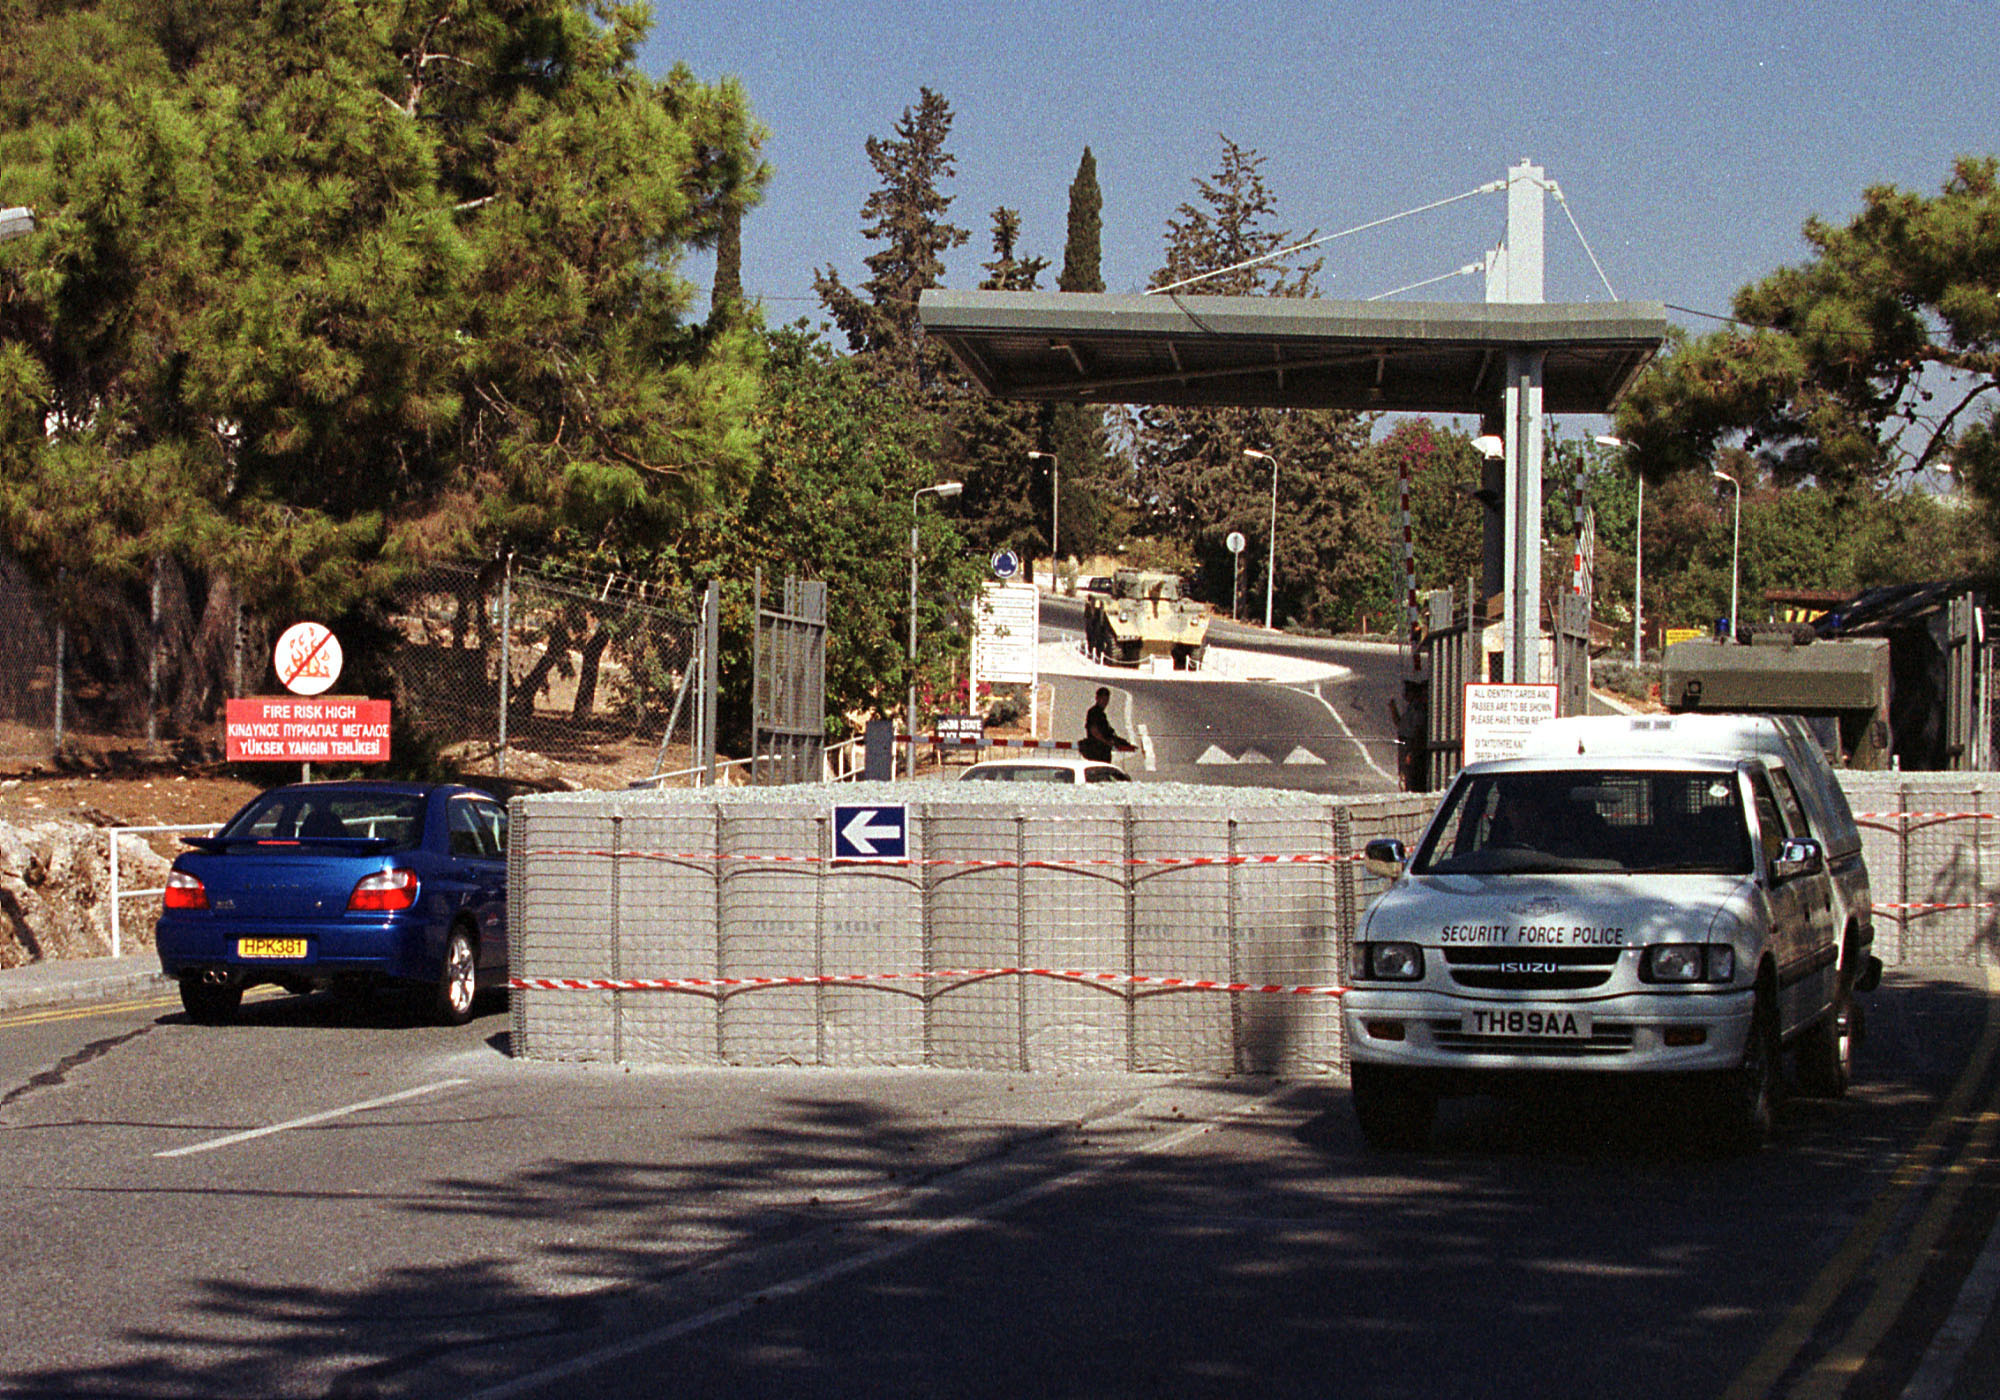 Steel cages full of gravel stand in front of the main entrance to the British Army base of Episkopi, Cyprus on Wednesday, October 10, 2001. Security on and around the base has been increased since the begining   attacks in Afghanistan.  (AP Photo/Philip Mark)